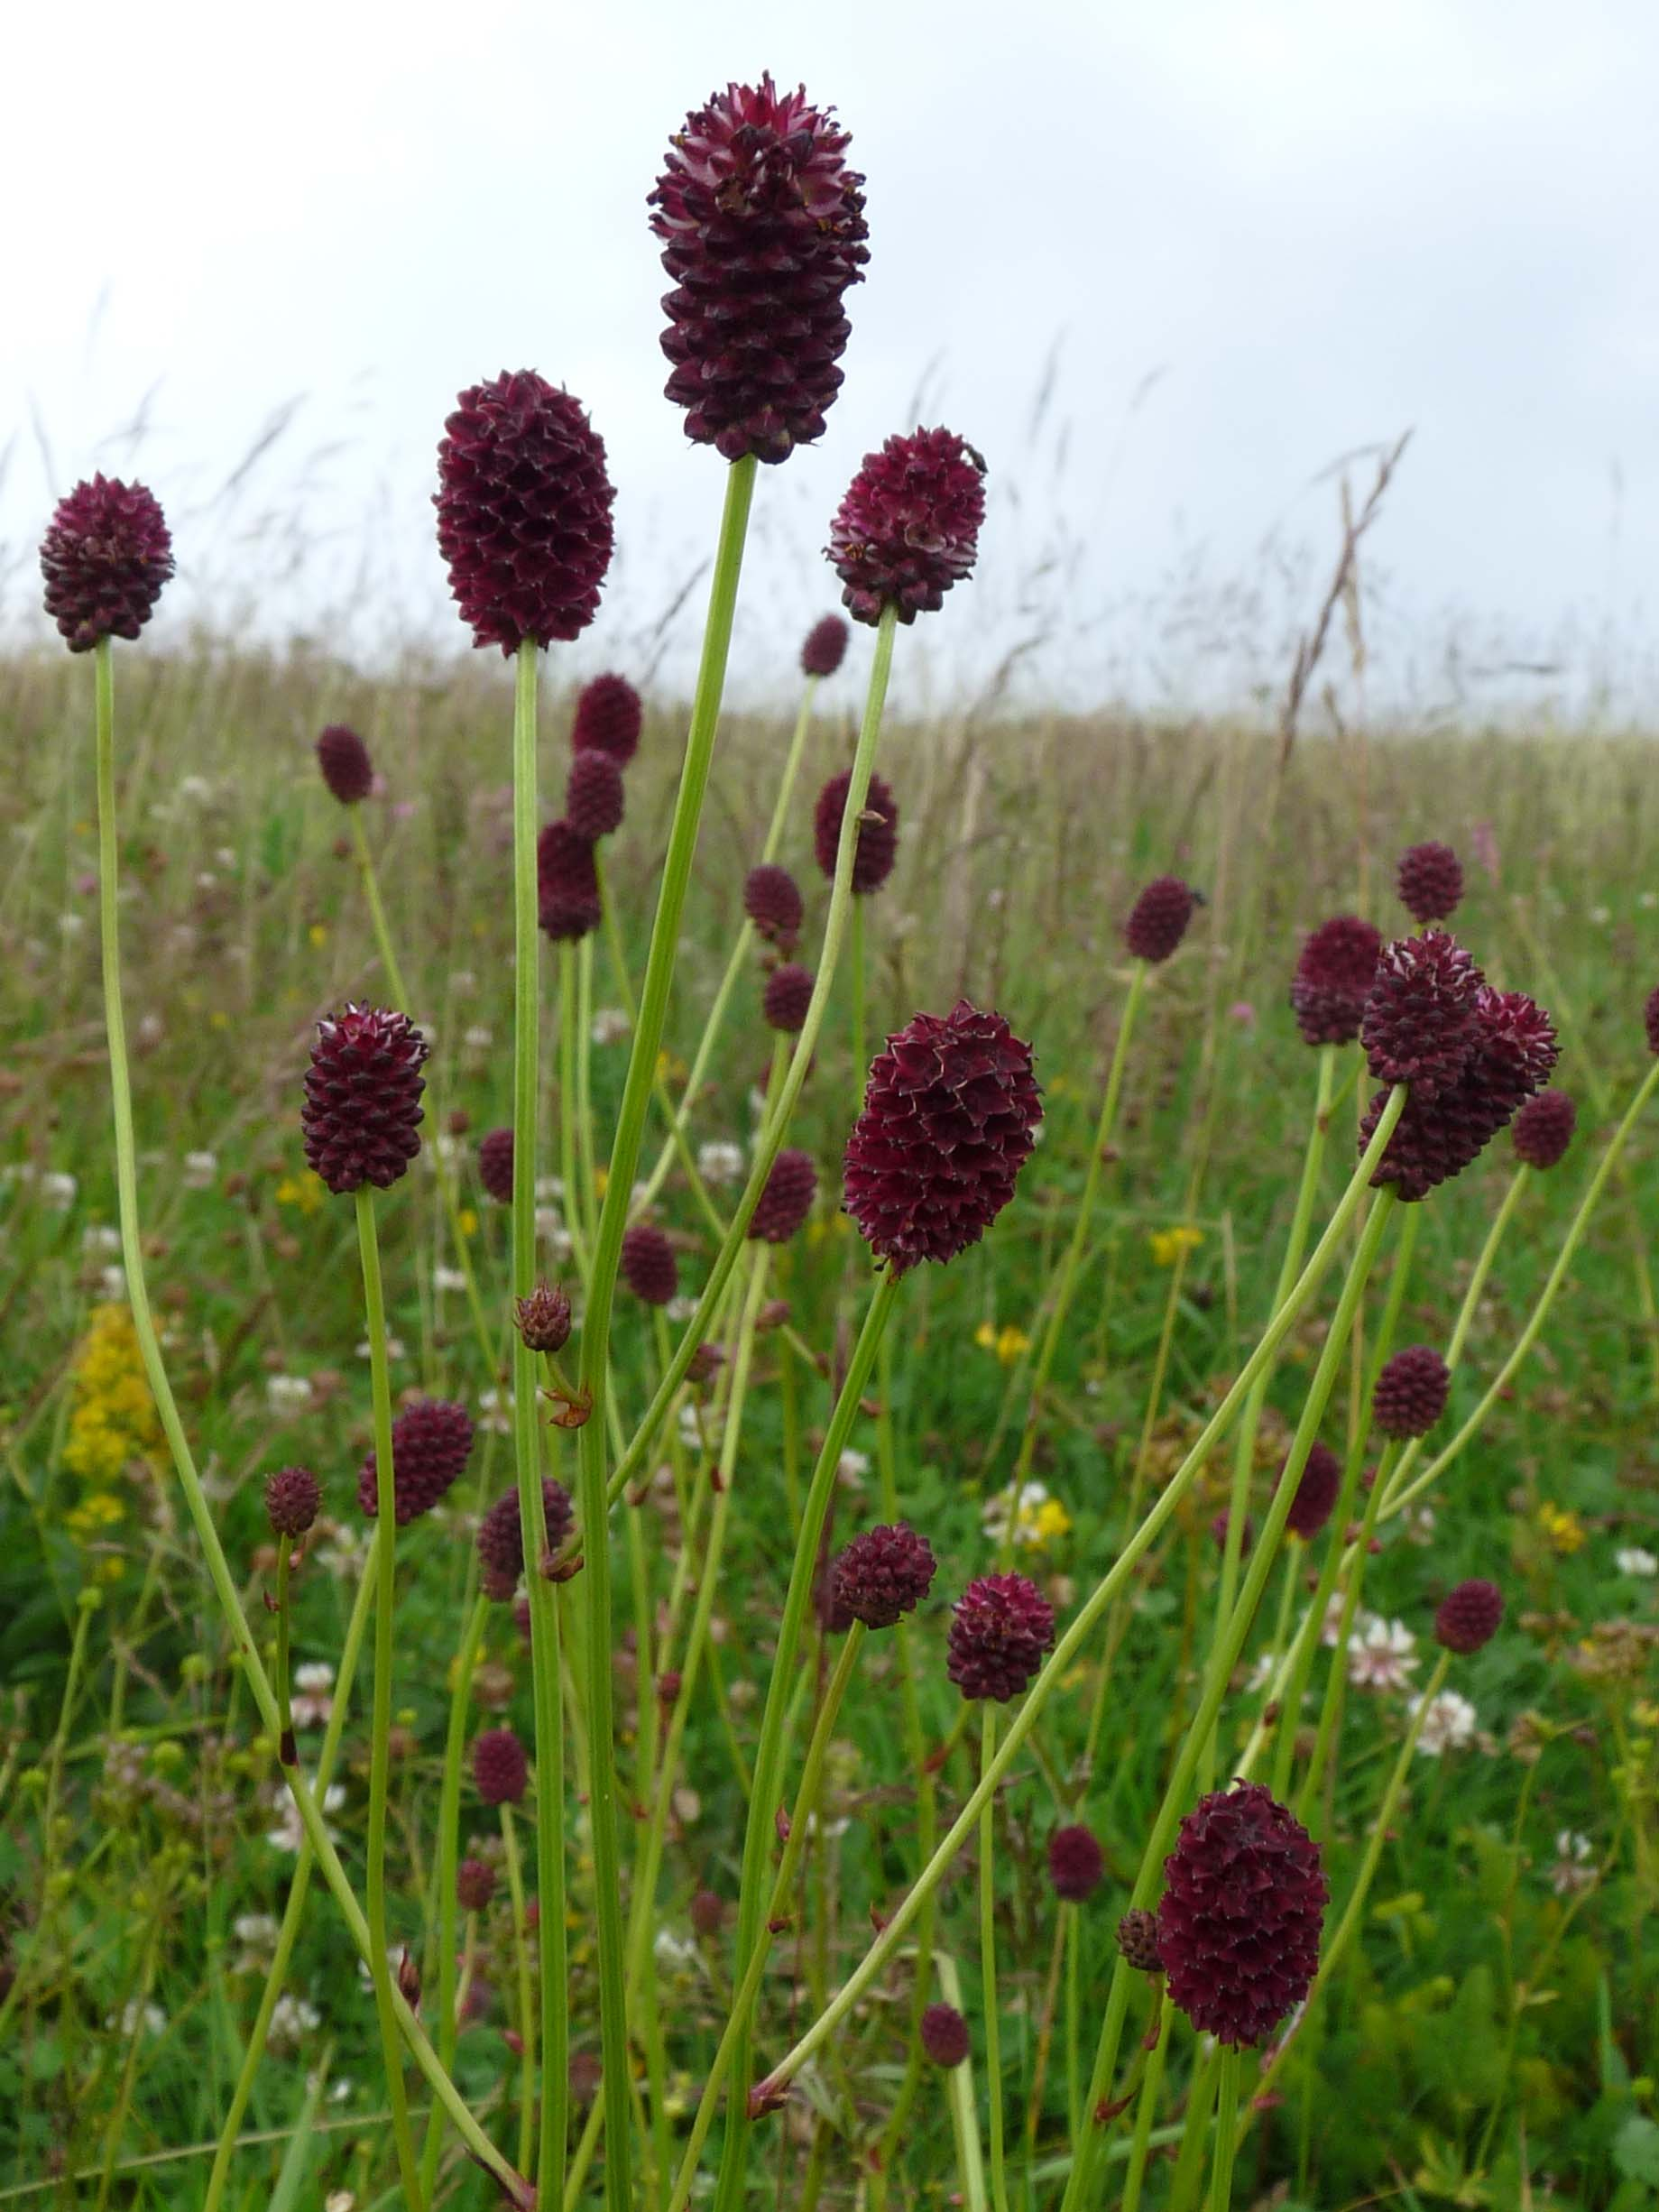 Sanguisorba burnet for Sanguisorba officinalis red thunder